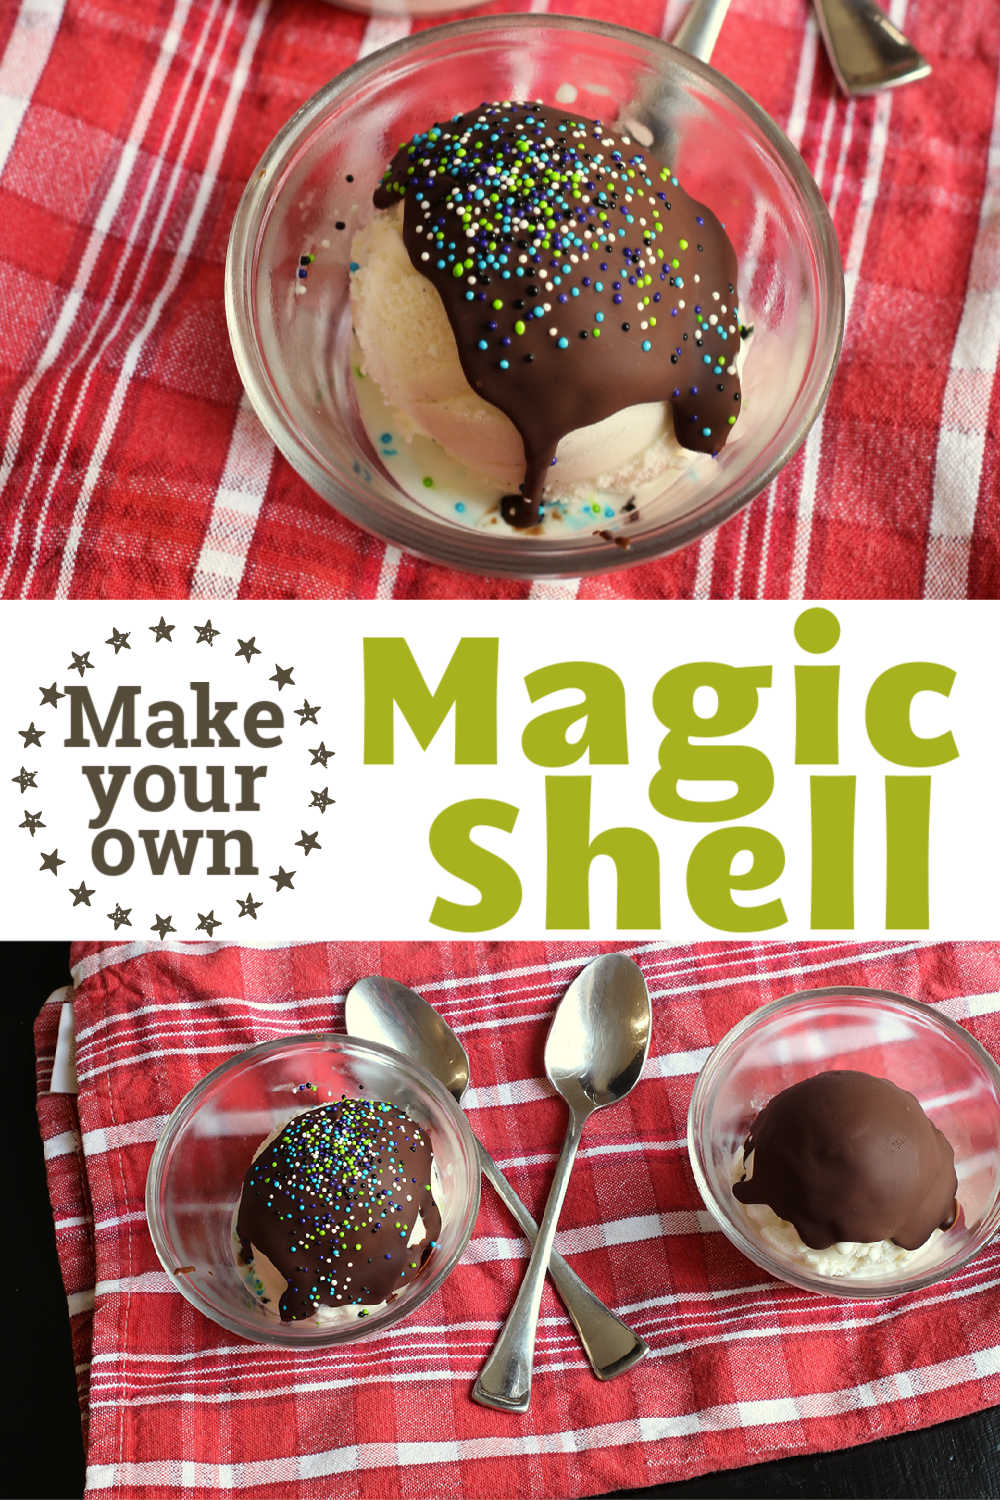 collage of bowls of magic shell and ice cream